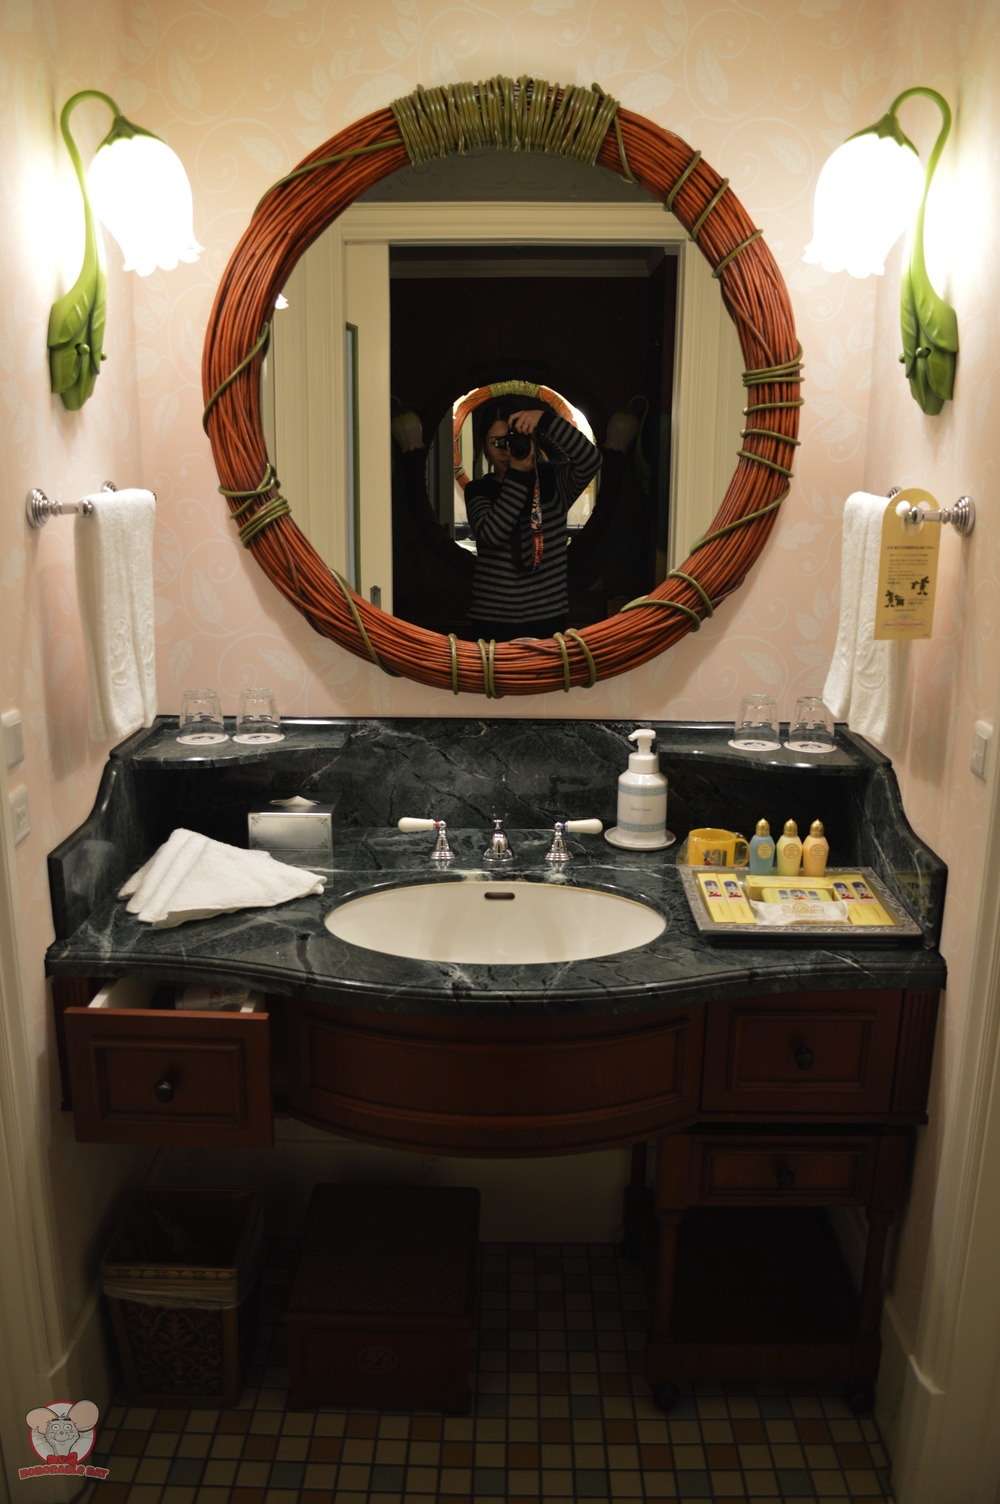 Love the mirror and lights in the sink area